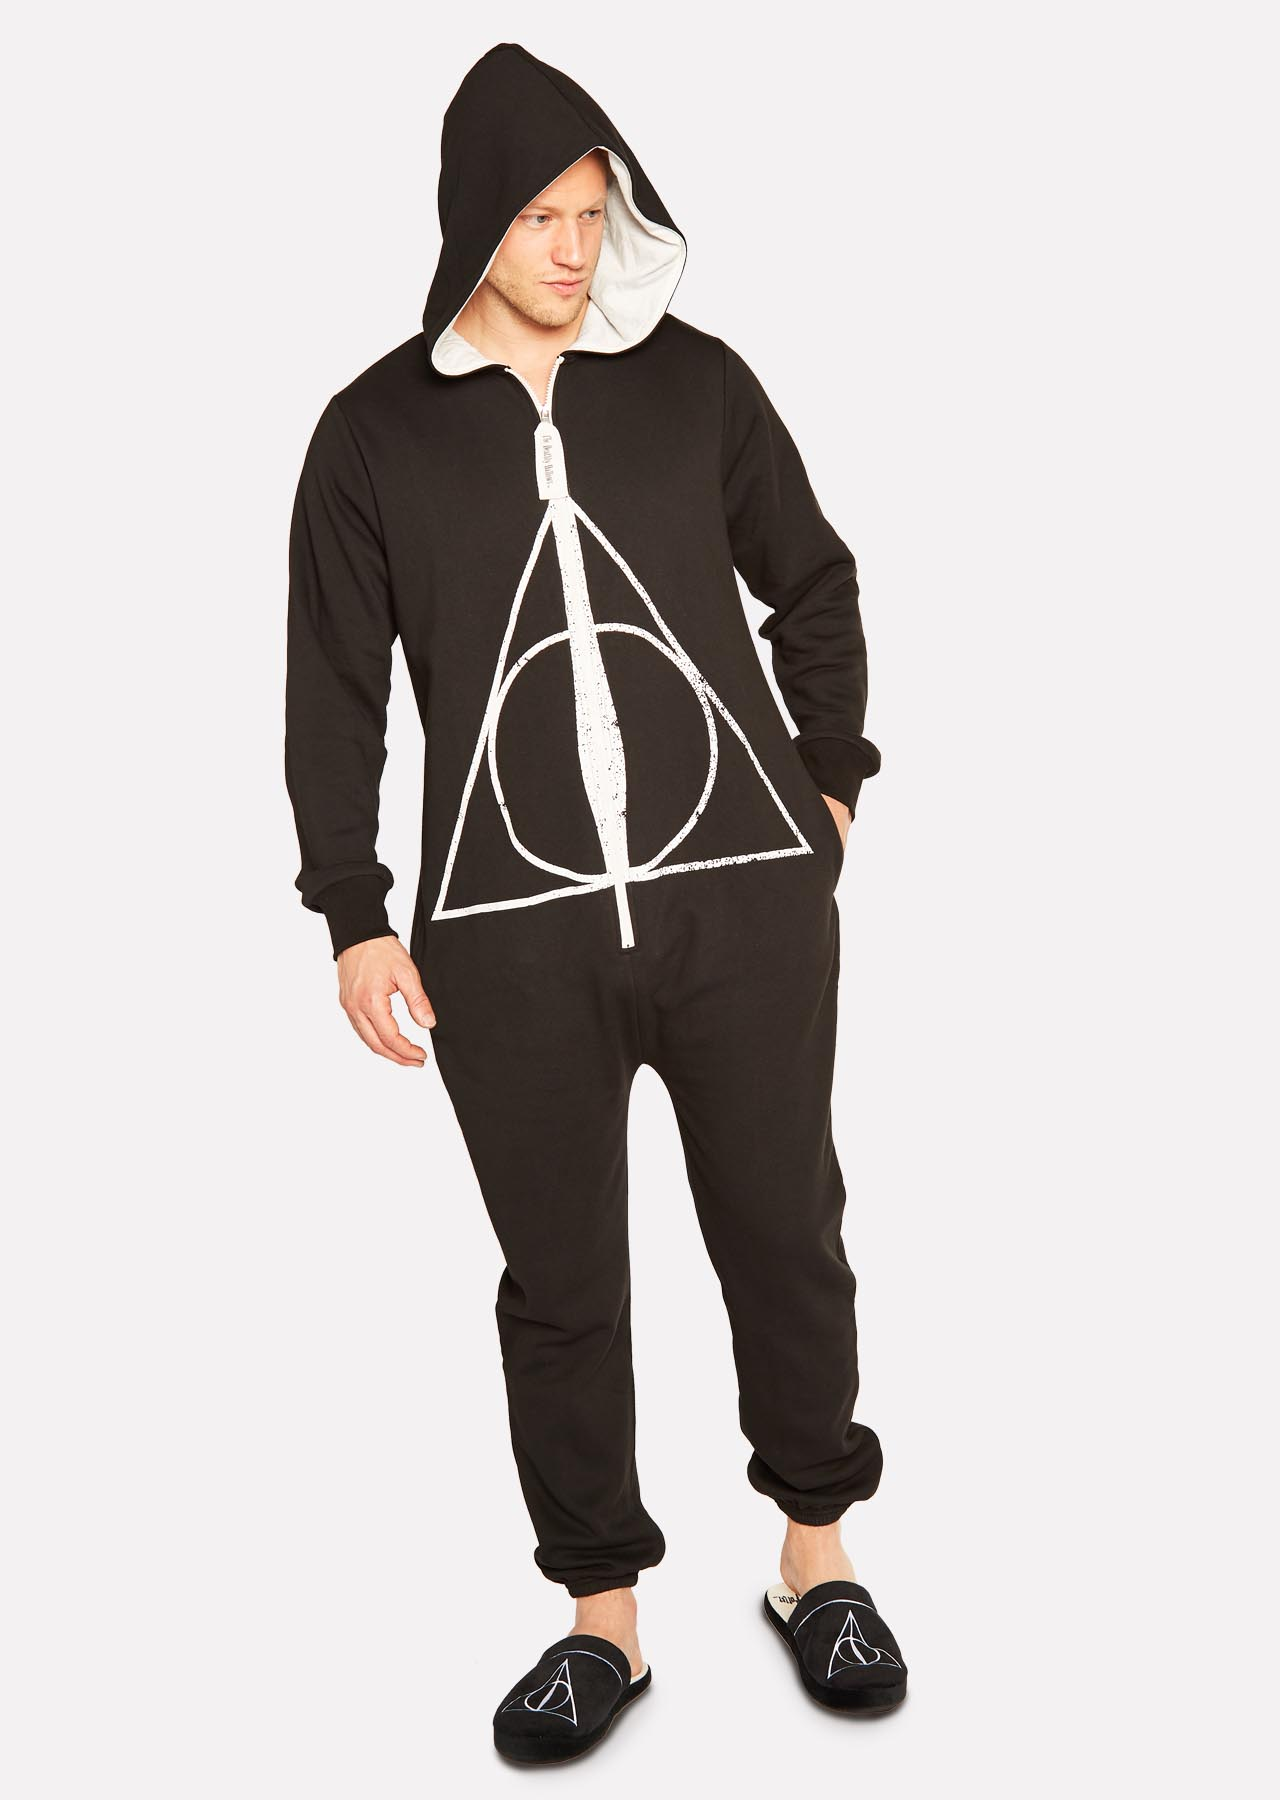 Harry Potter Deathly Hallows Mens Hooded Bath Robe Dressing Night Gown Adult